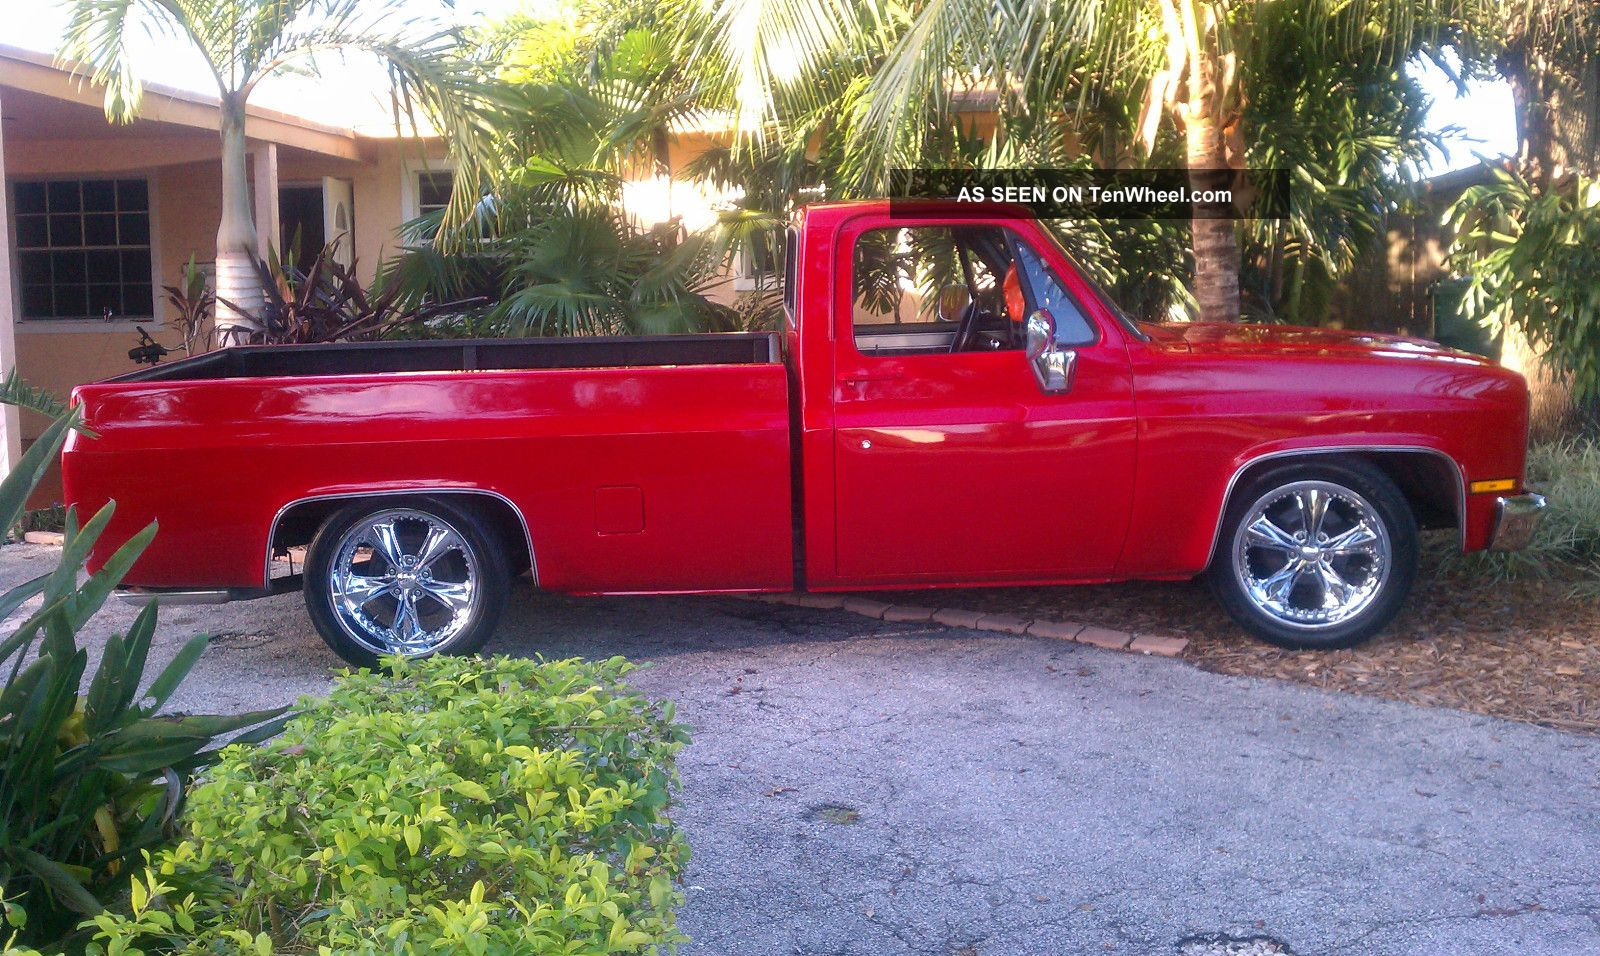 completely 1985 chevy pickup truck 400 small block chevy engine com. Black Bedroom Furniture Sets. Home Design Ideas